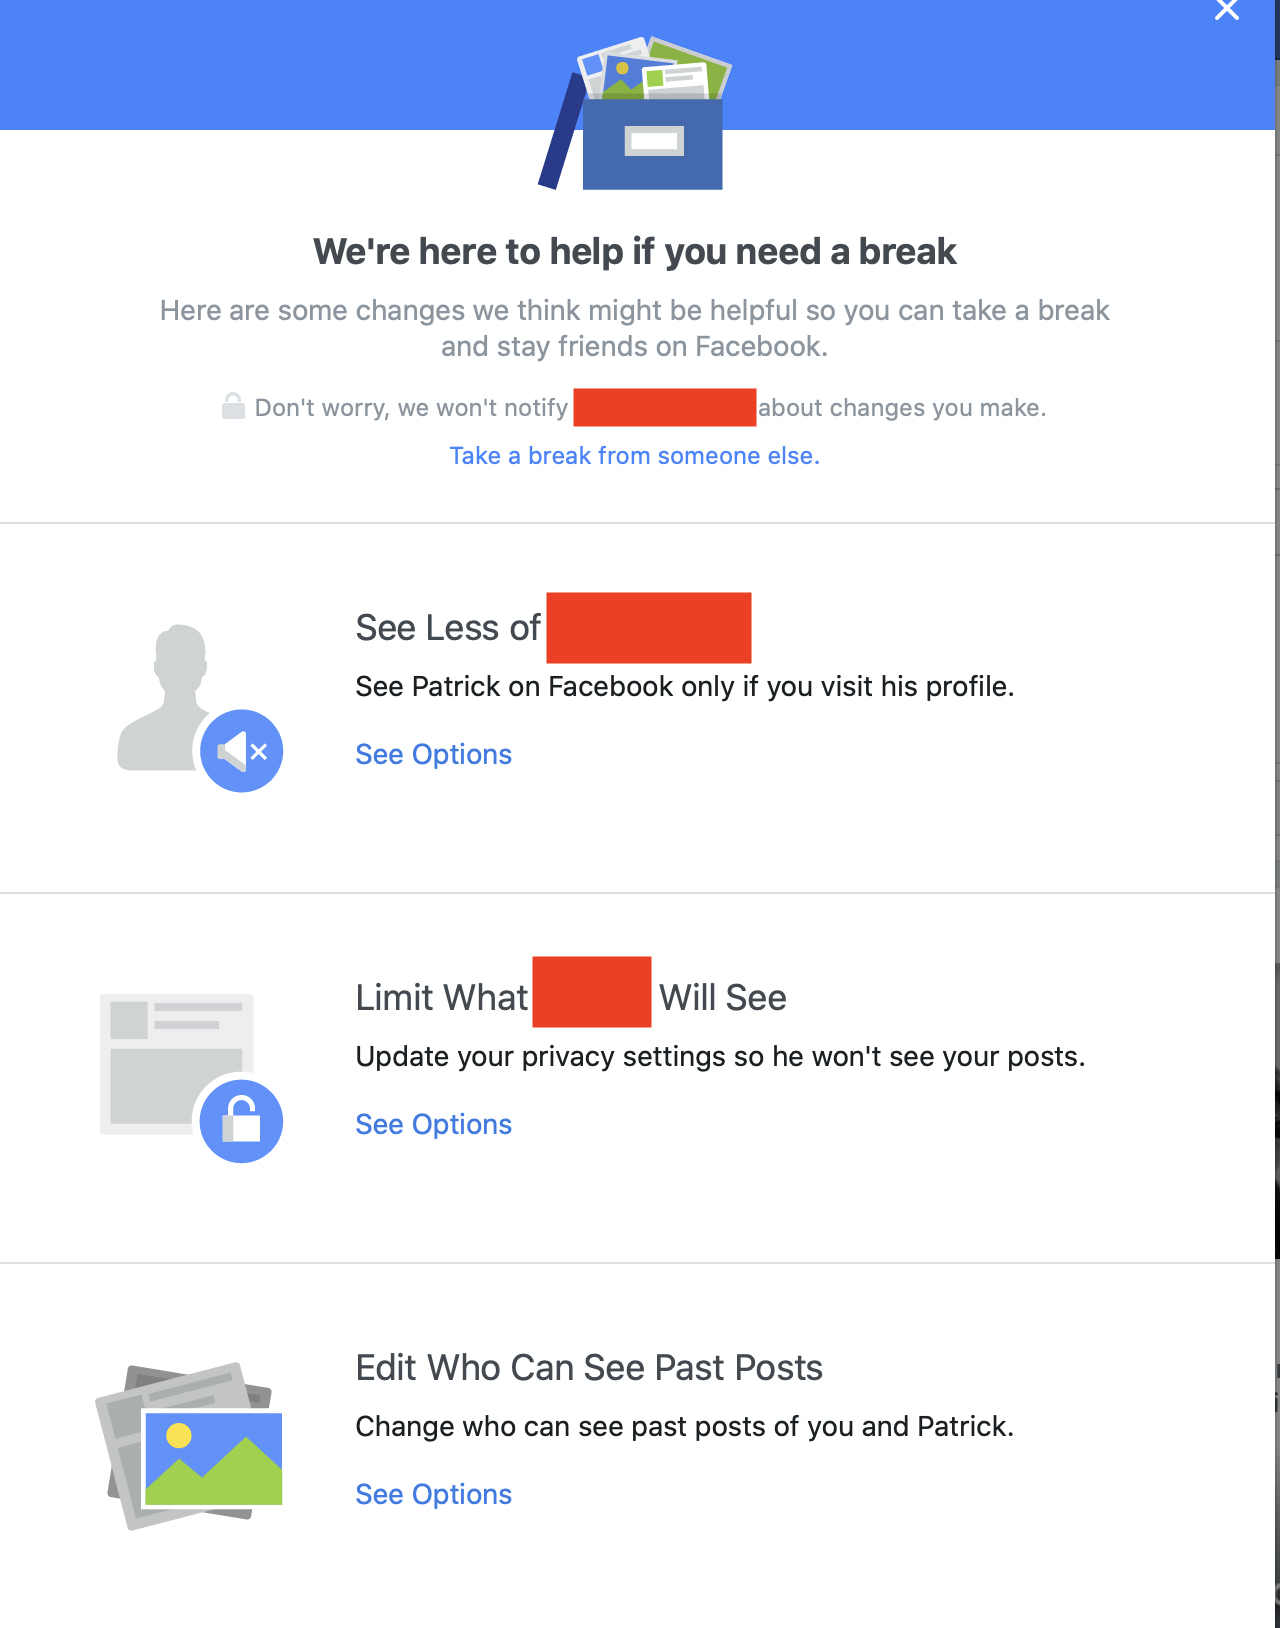 How to take a break from someone on Facebook